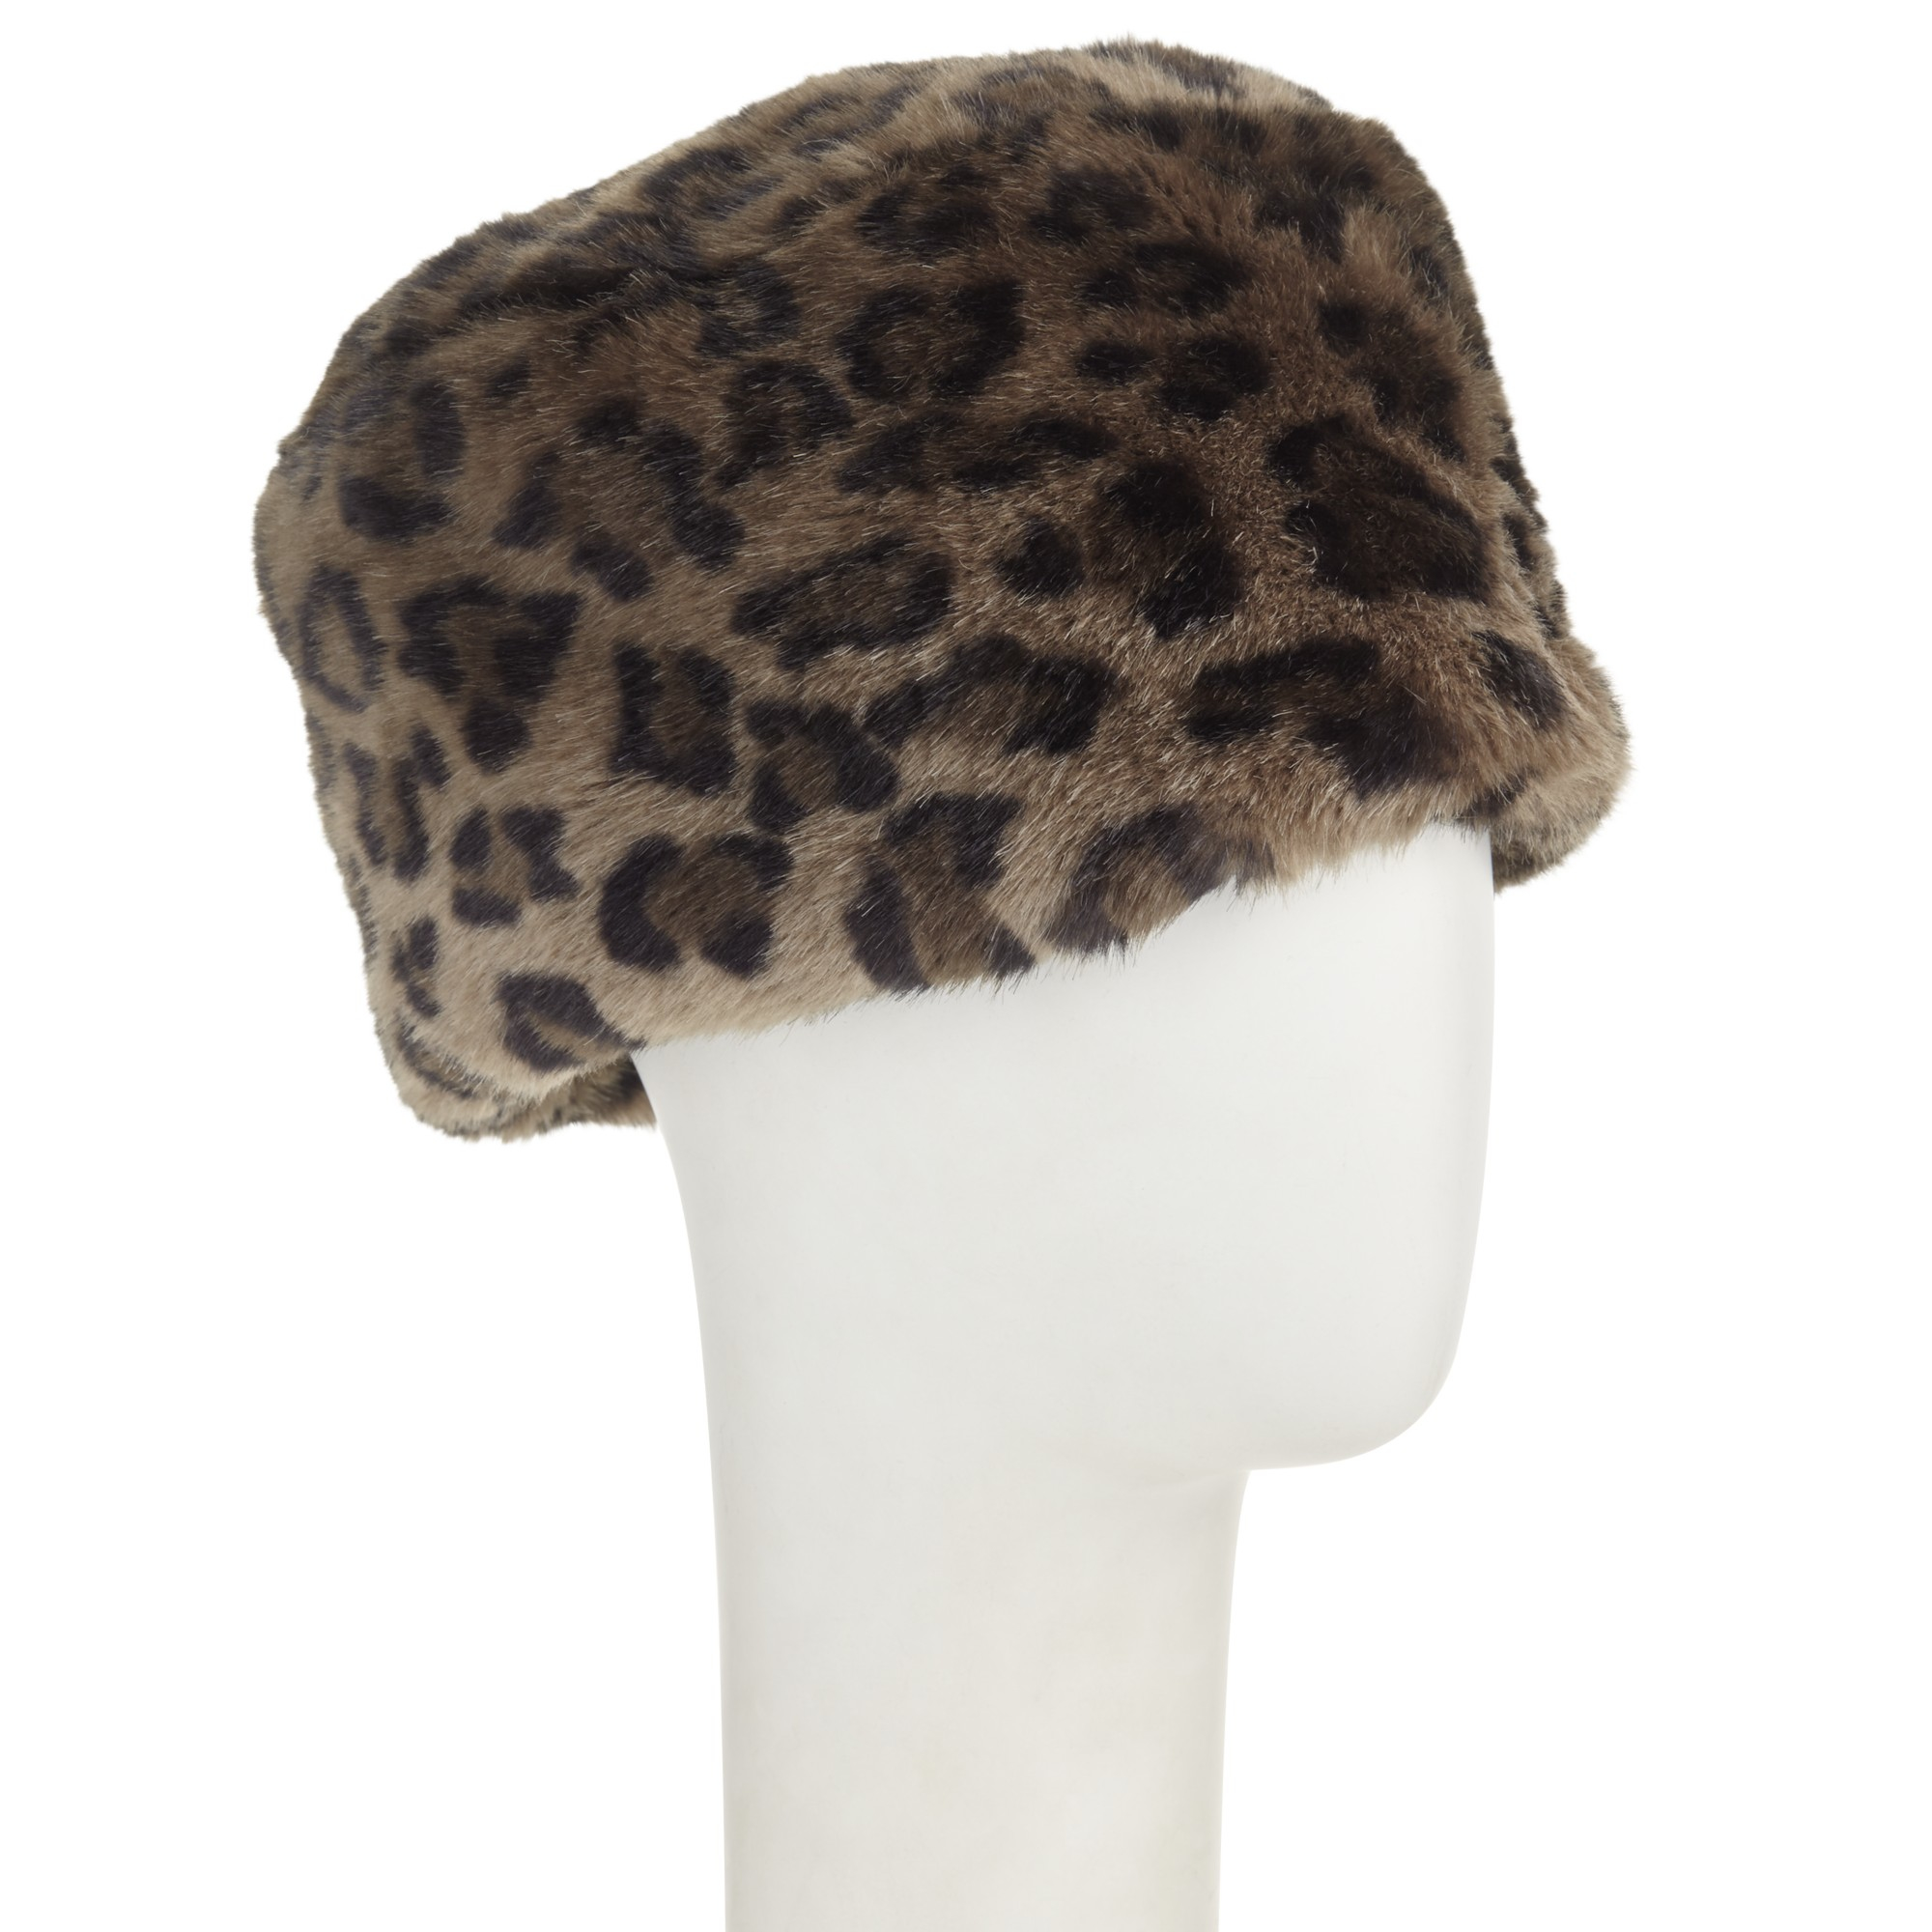 b515230d7 John Lewis Multicolor Faux Fur Cossack Hat